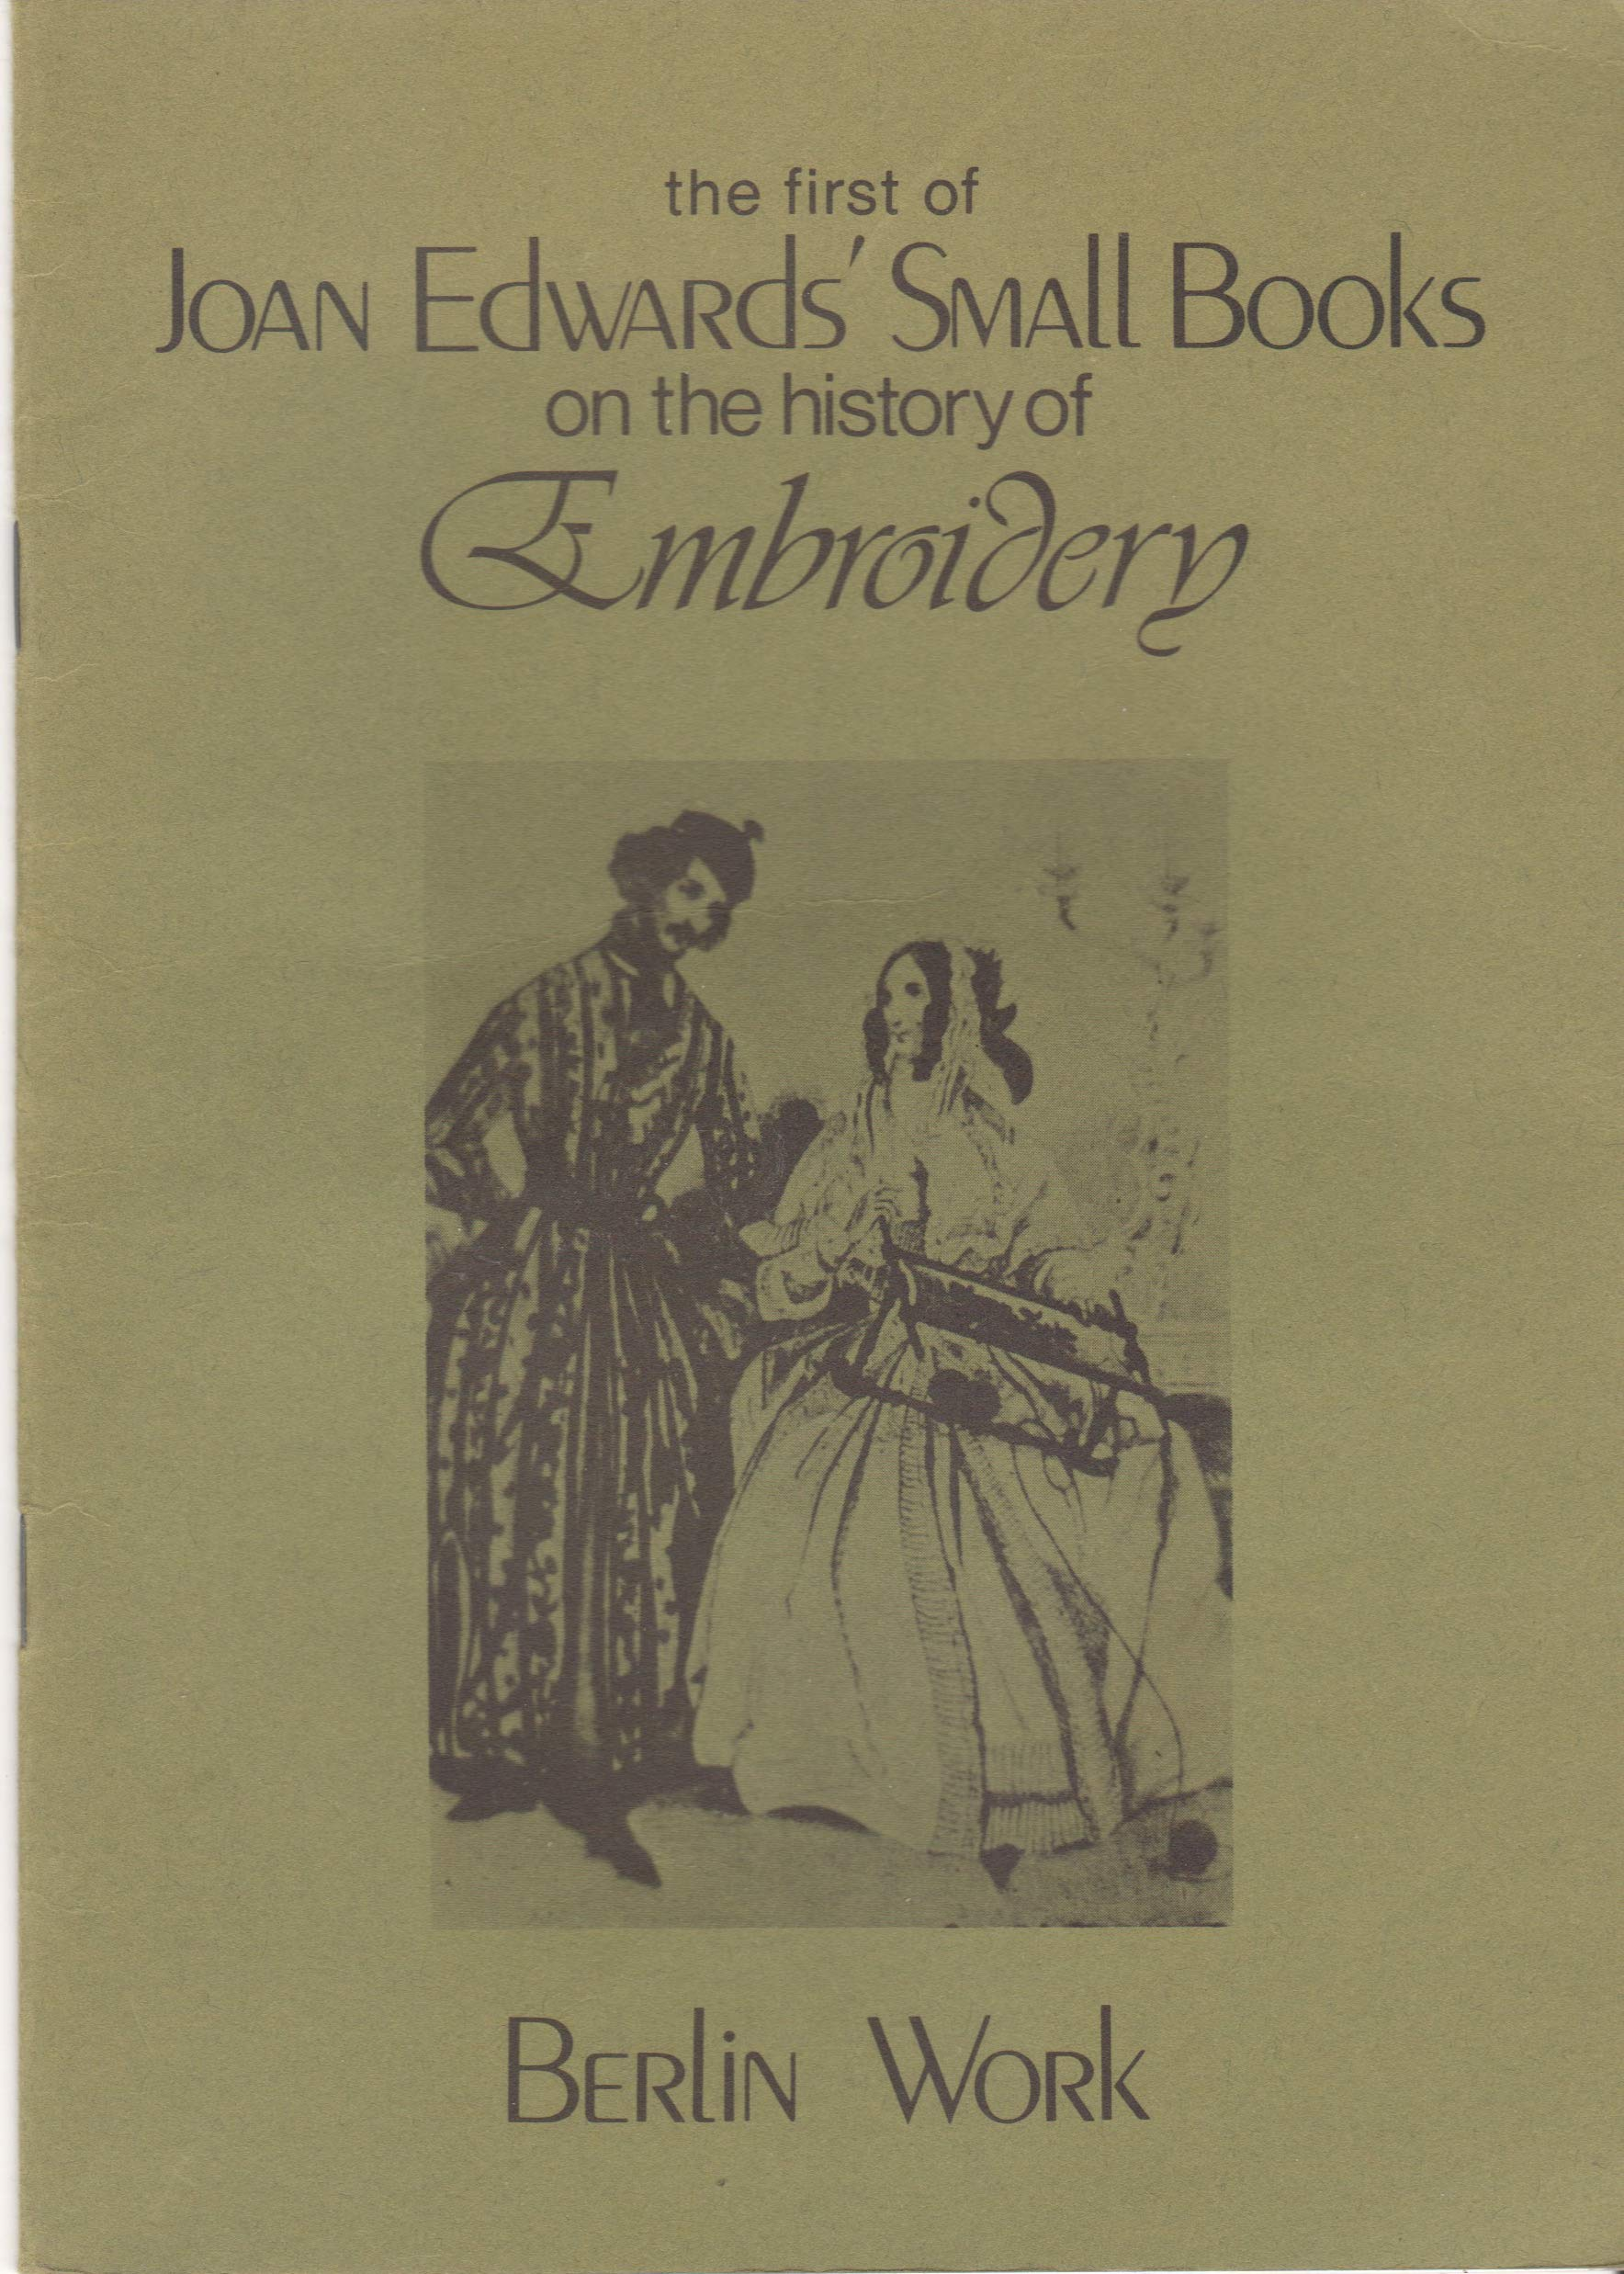 Small Books on the History of Embroidery: Berlin Work No. 1 Paperback –  October, 1980